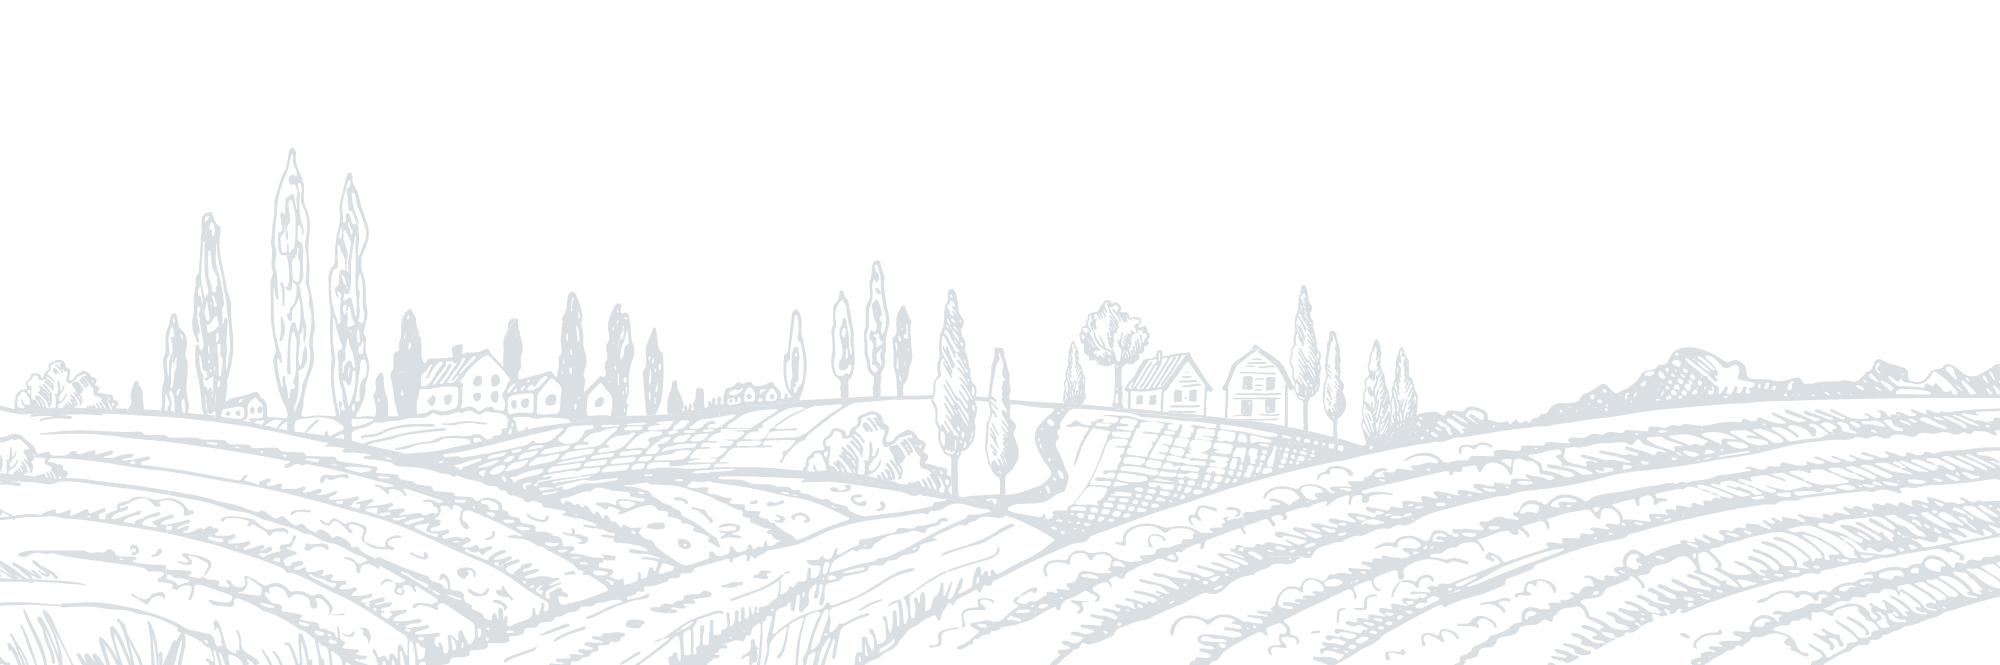 An illustrative field with plants and houses.